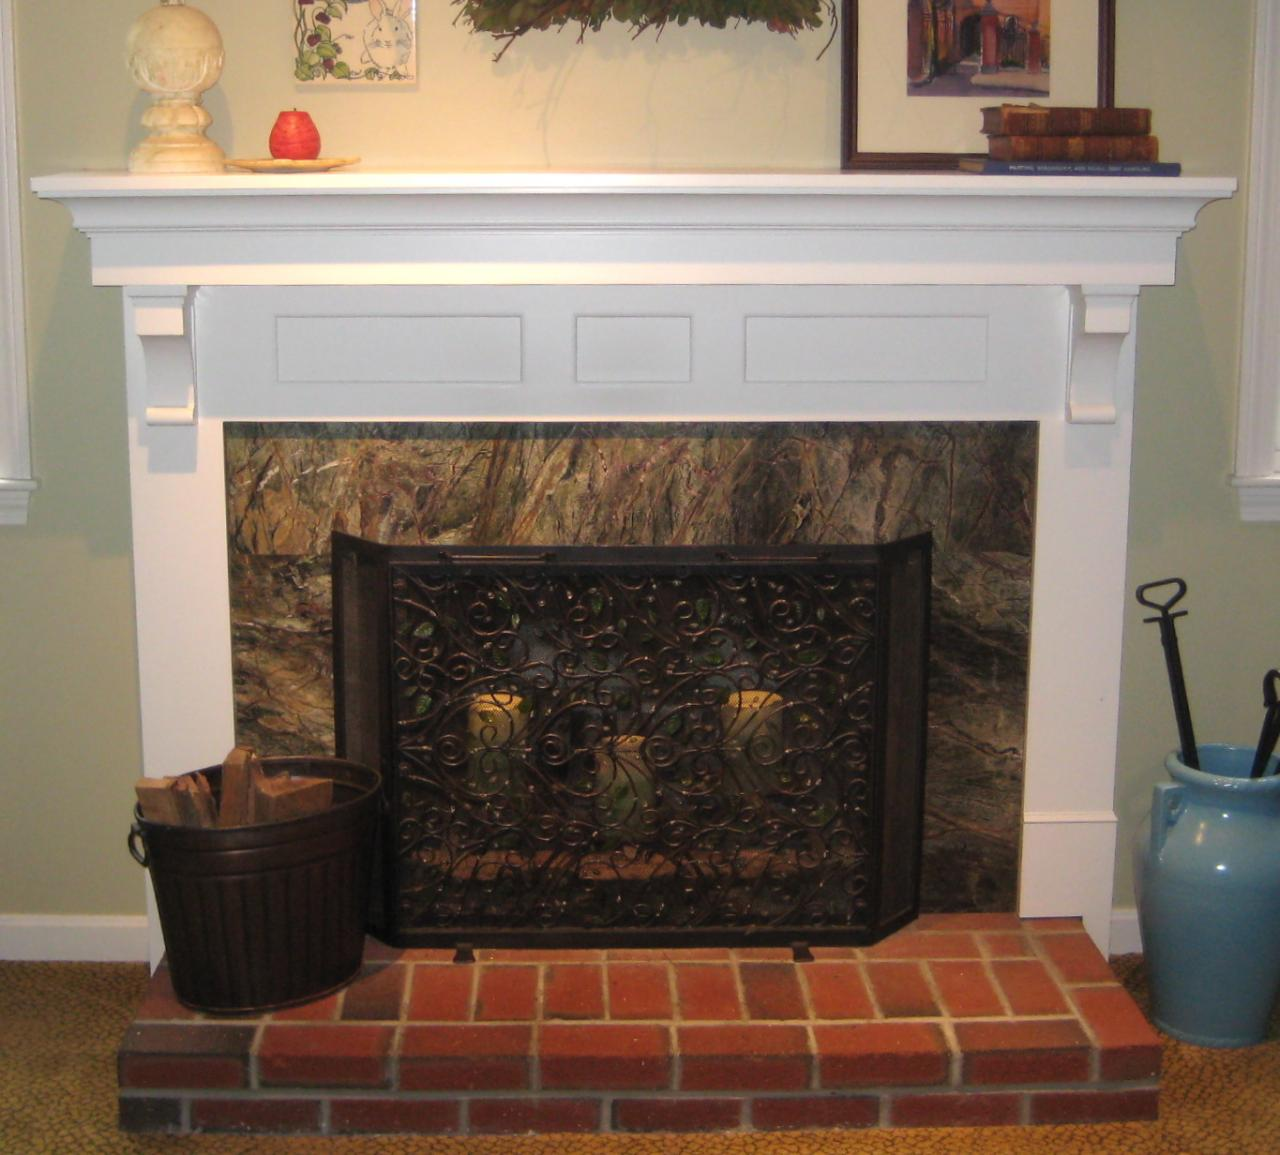 murphy amp co custom woodworking fireplace mantels mantel design ideas - Mantel Design Ideas